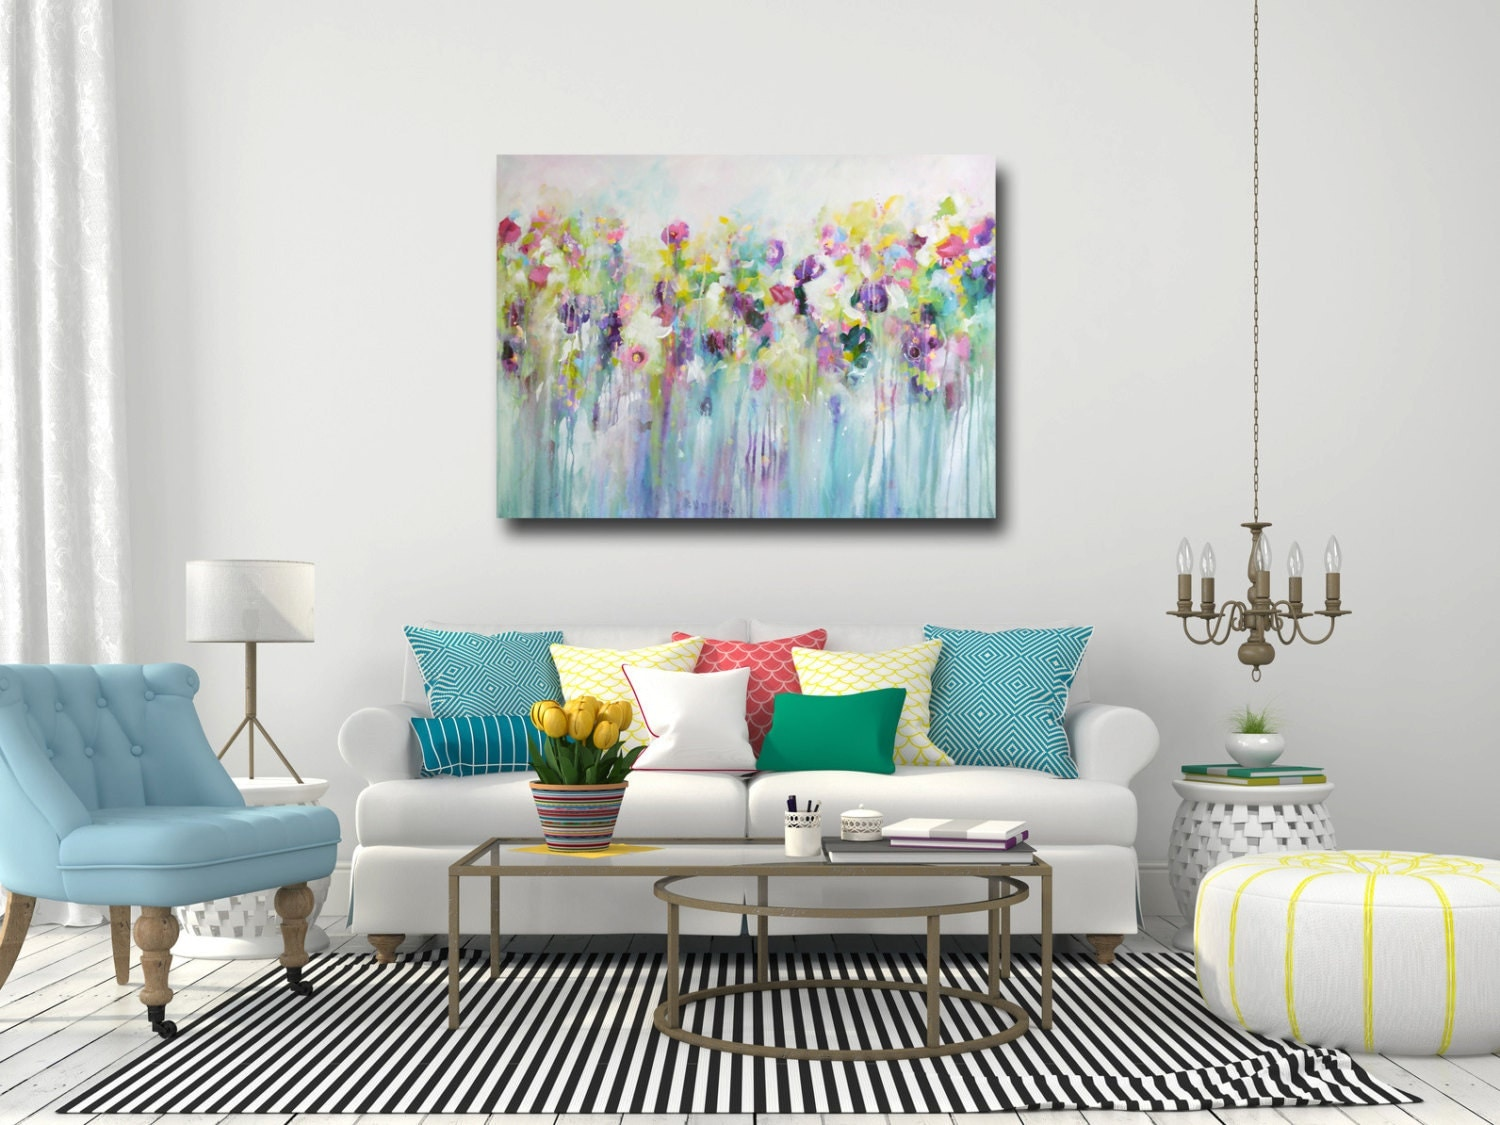 Large wall art canvas art abstract floral canvas print Large wall art